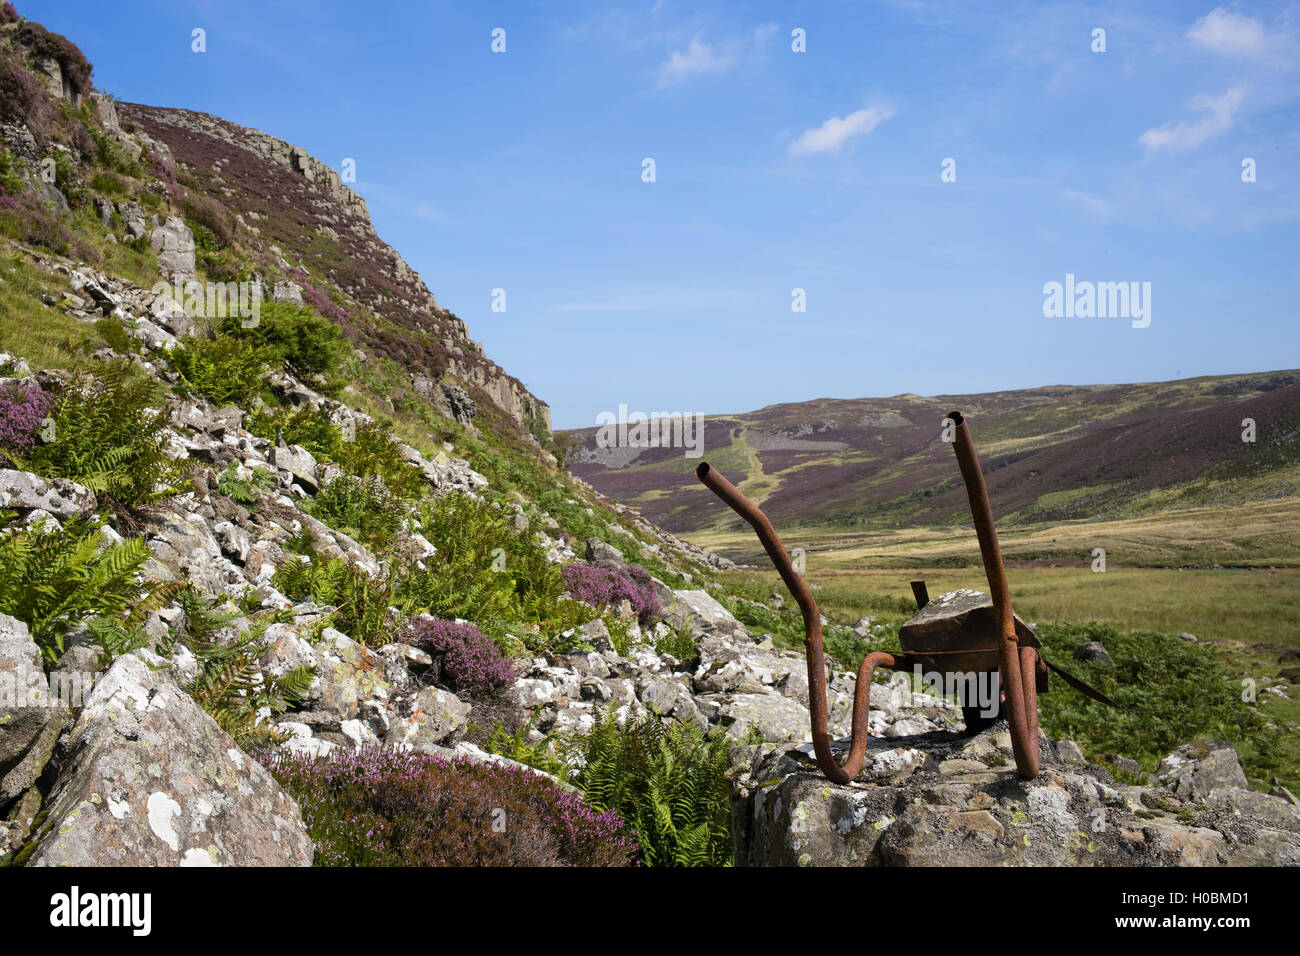 A reminder of individual industry, Falcon Clints, Upper Teesdale National Nature Reserve, Durham, England, UK - Stock Image